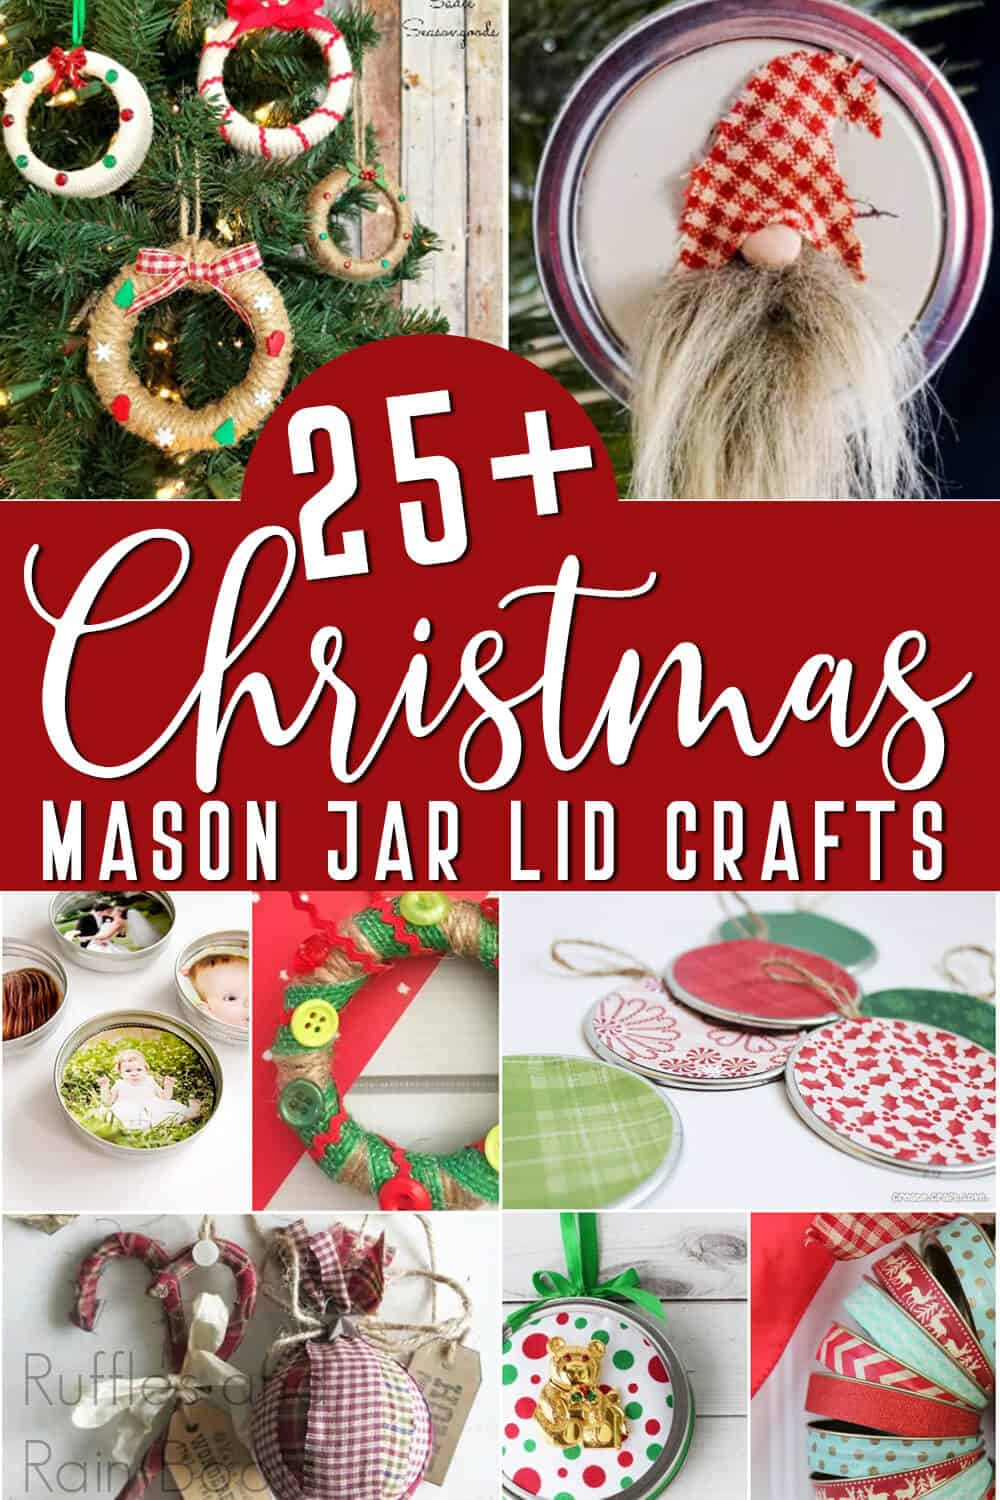 photo collage of farmhouse christmas crafts made of mason jar lids with text which reads 25+ christmas mason jar lid crafts